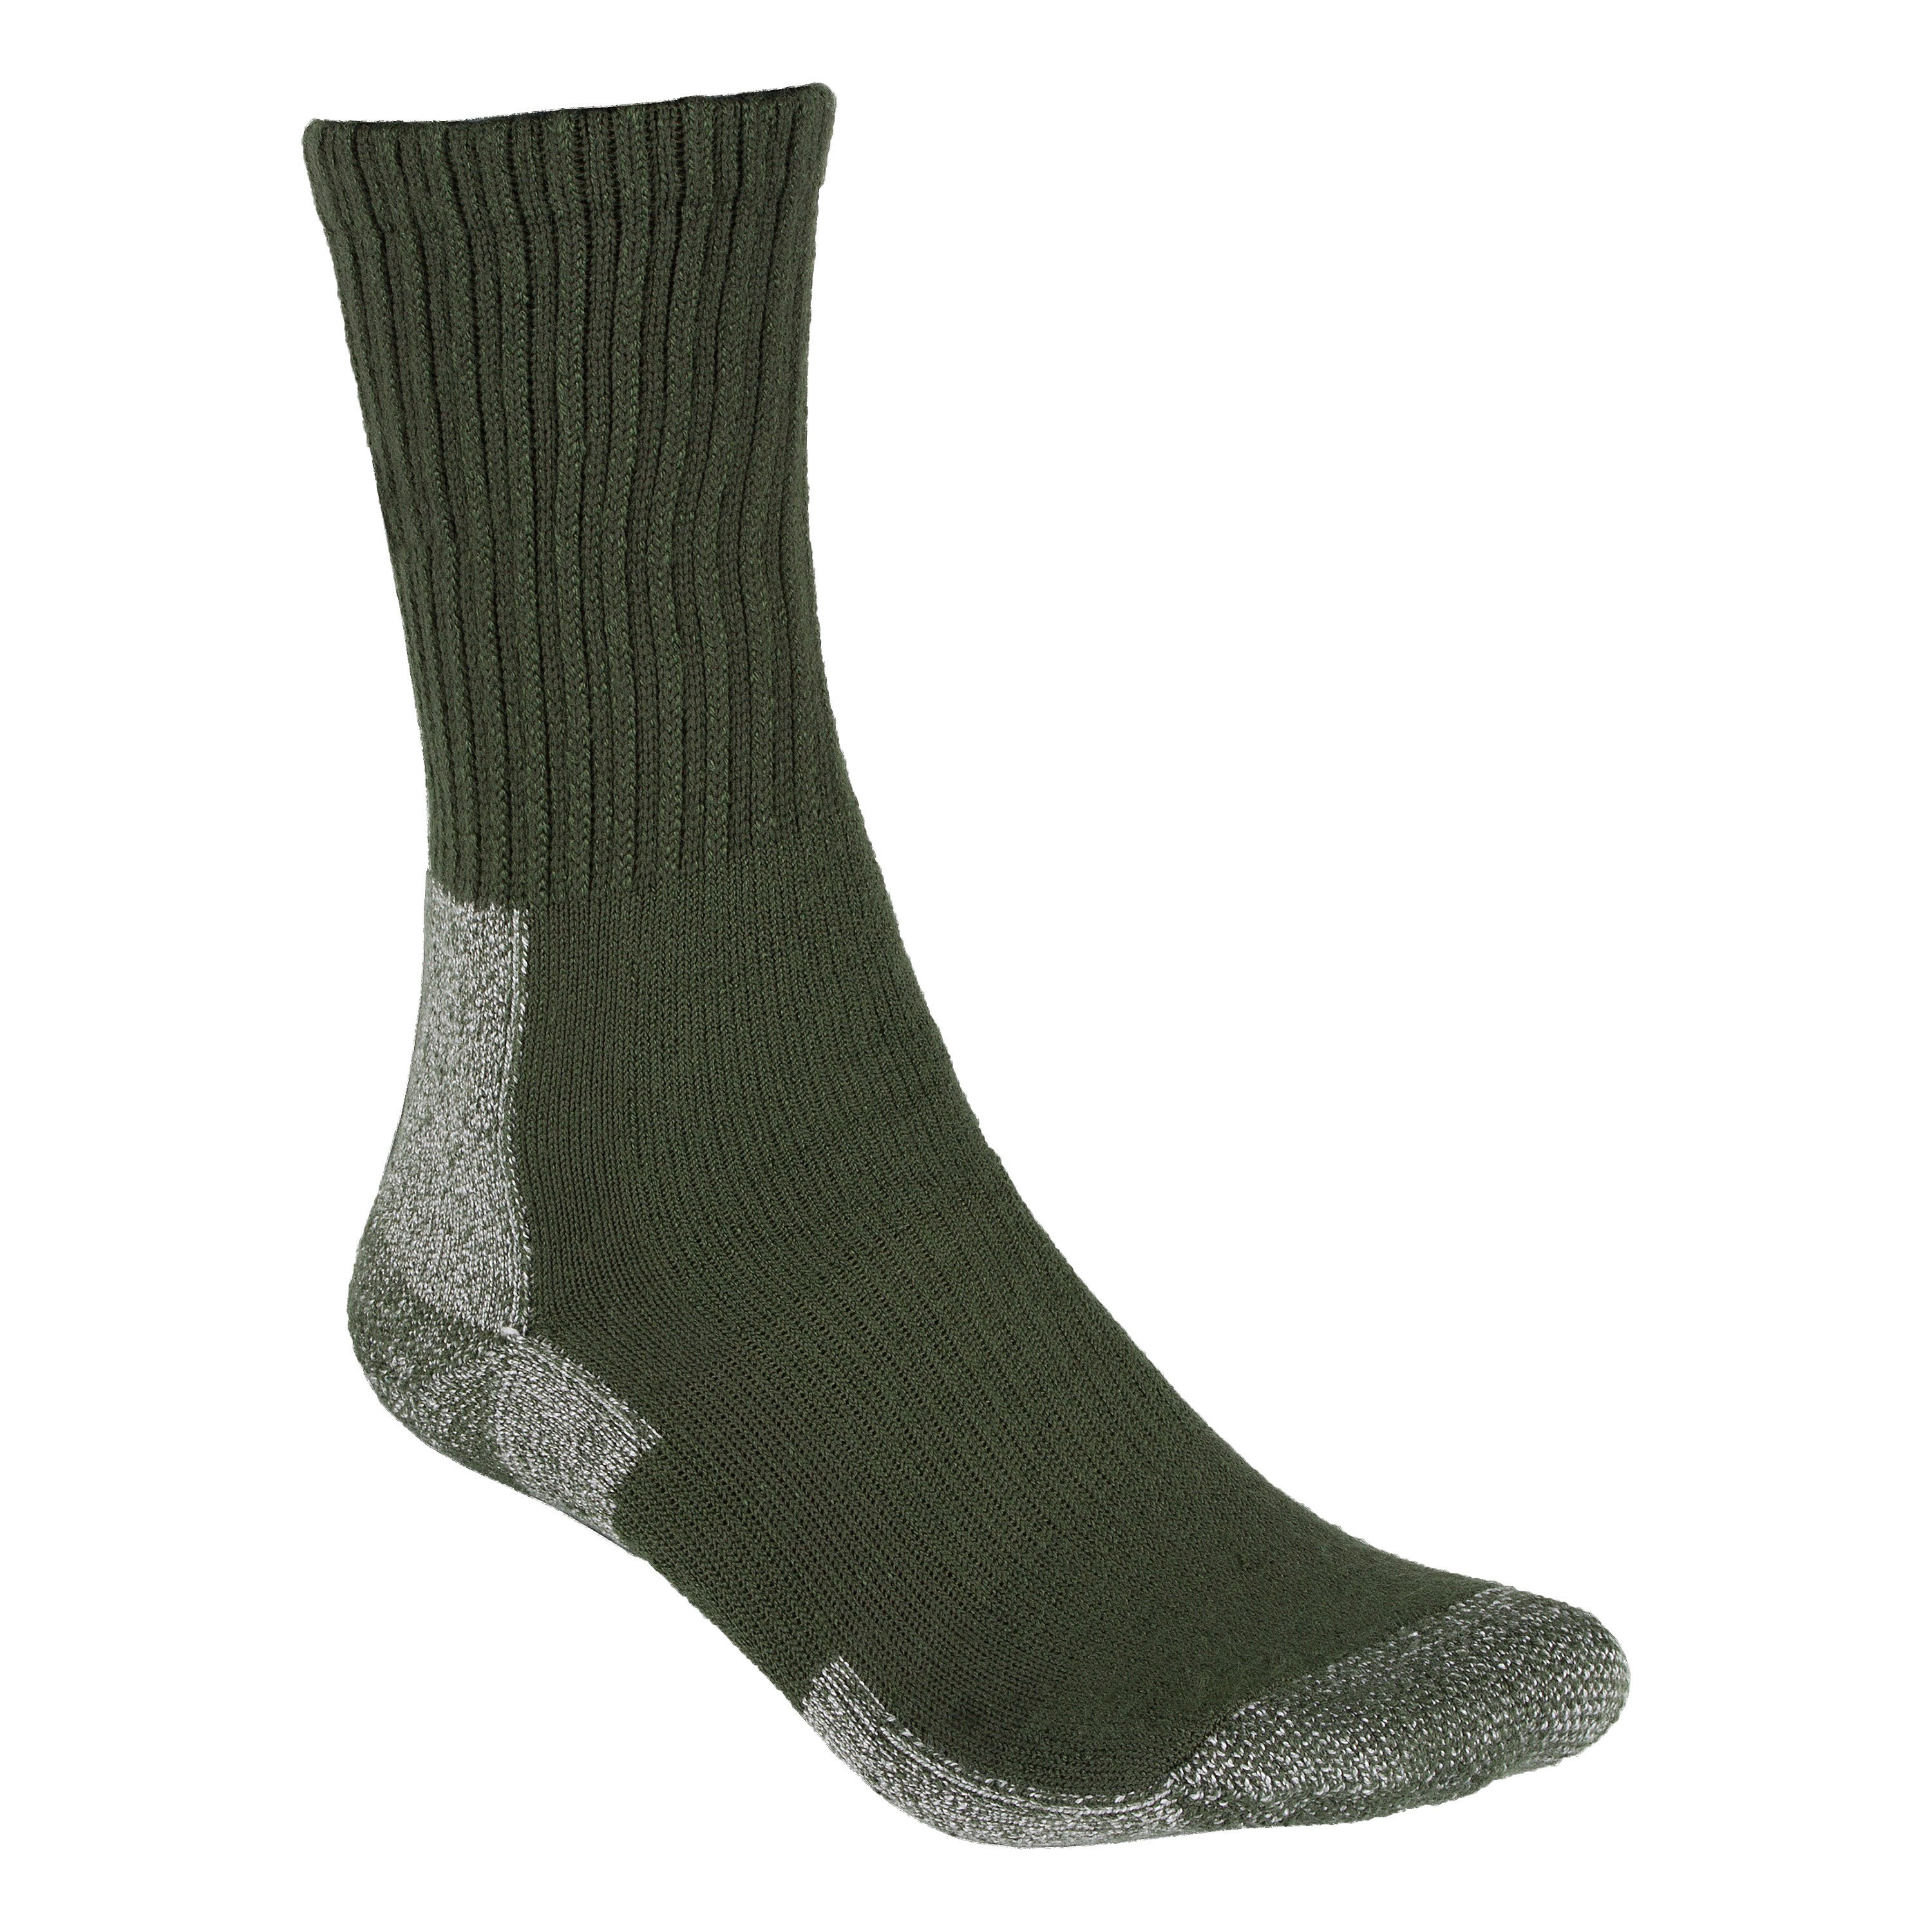 Thorlo Socken Trail Hiking Moderate Cushion schwarz forest green